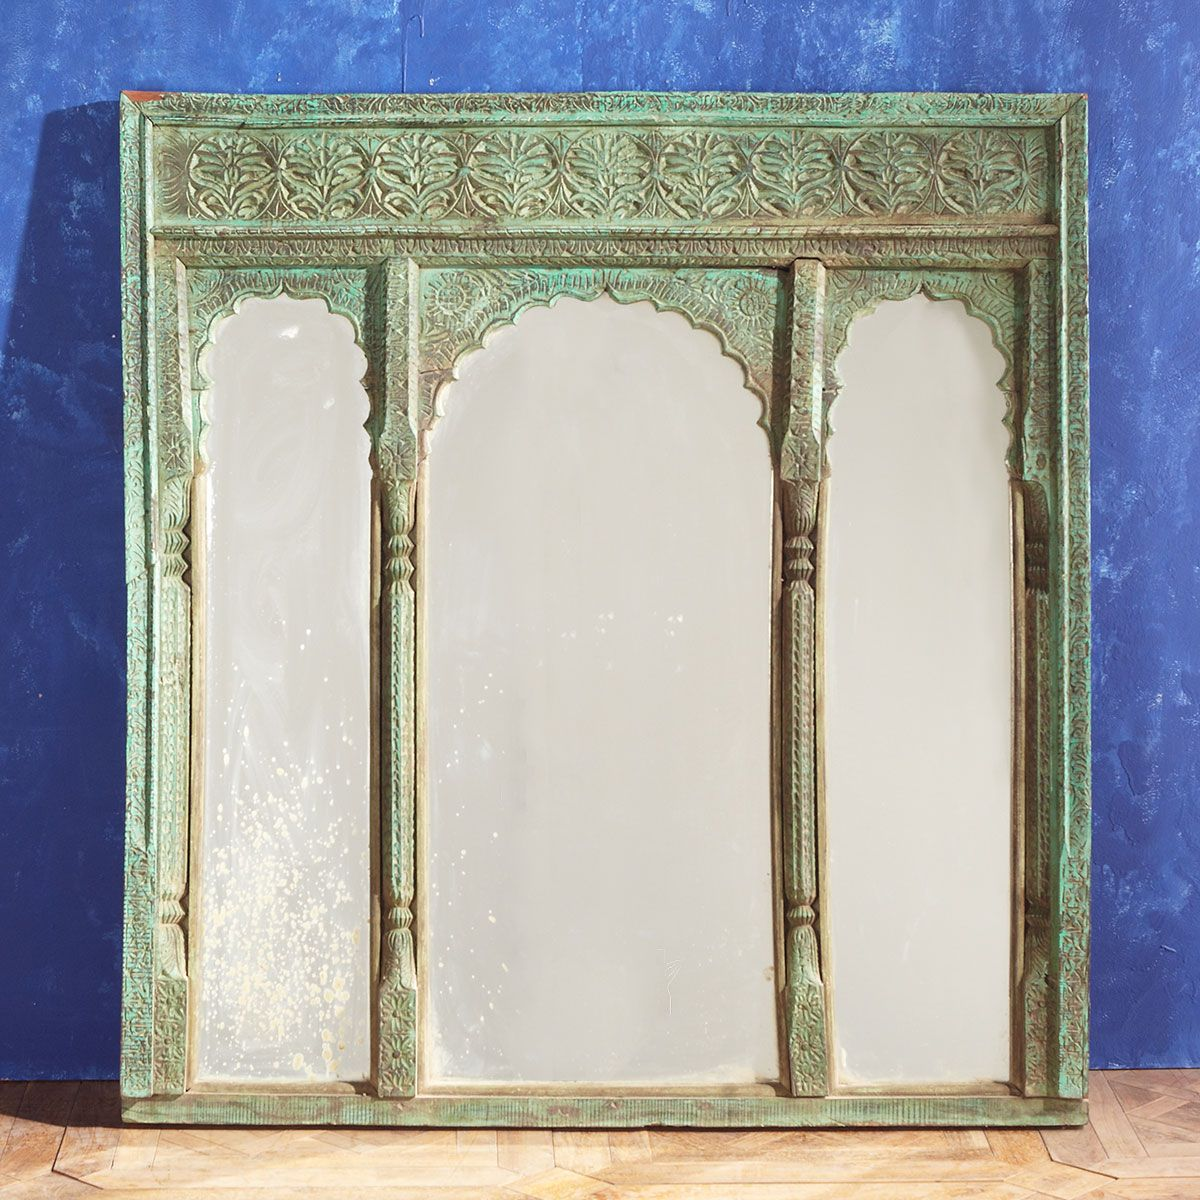 Arched Indian wood window frames turned into a mirror